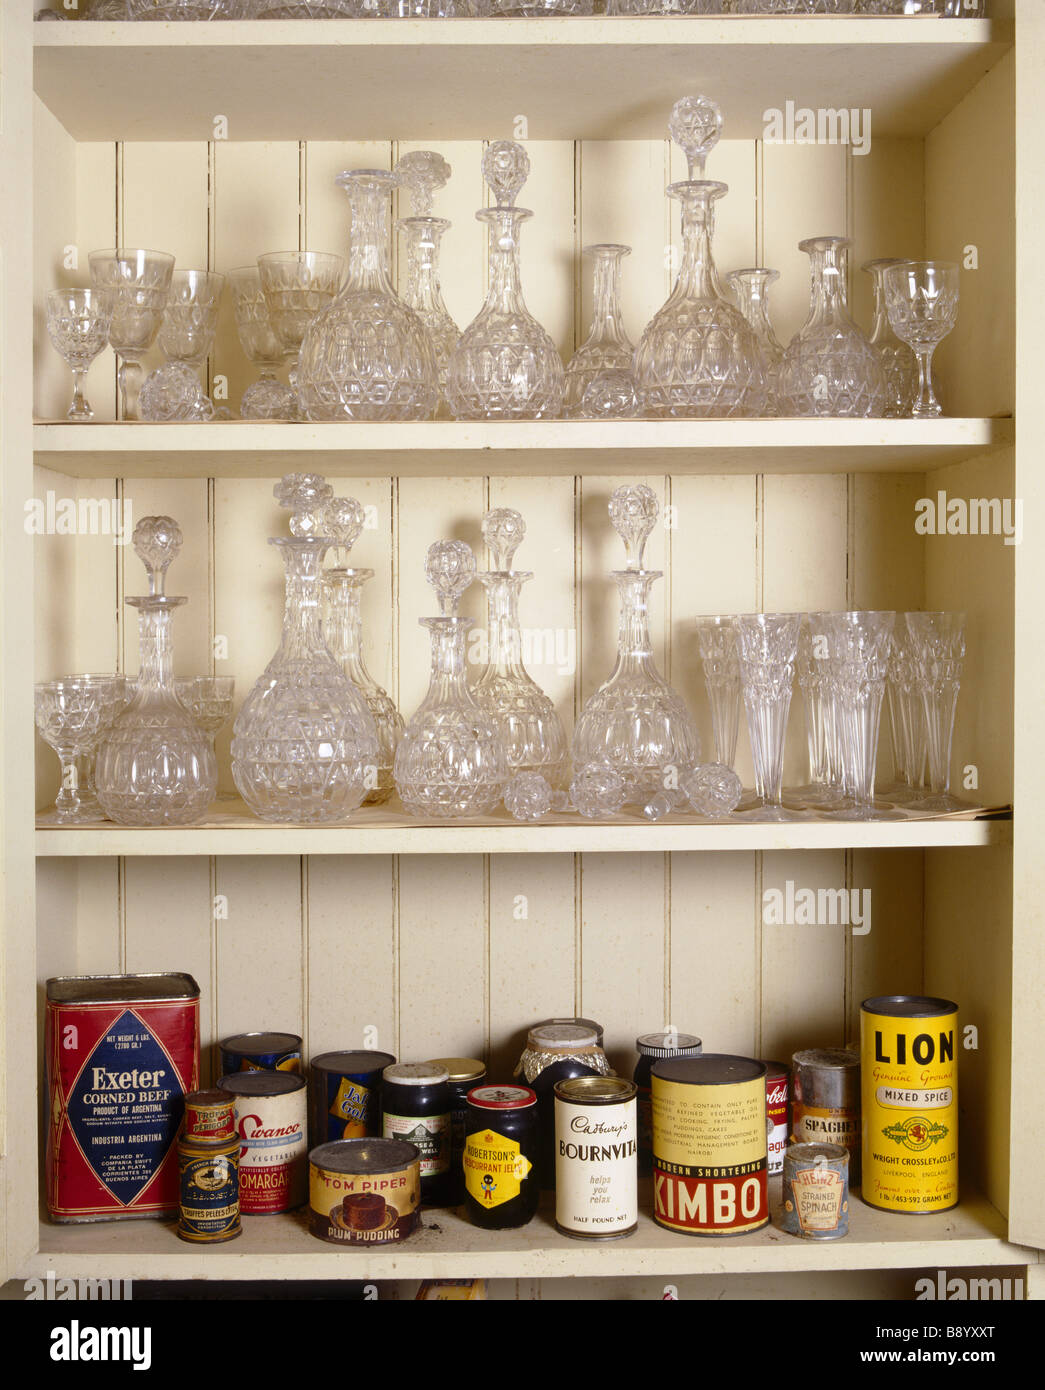 Cut glass decanters on two shelves with tins and groceries on the bottom shelf in a pantry cupboard at Tyntesfield - Stock Image